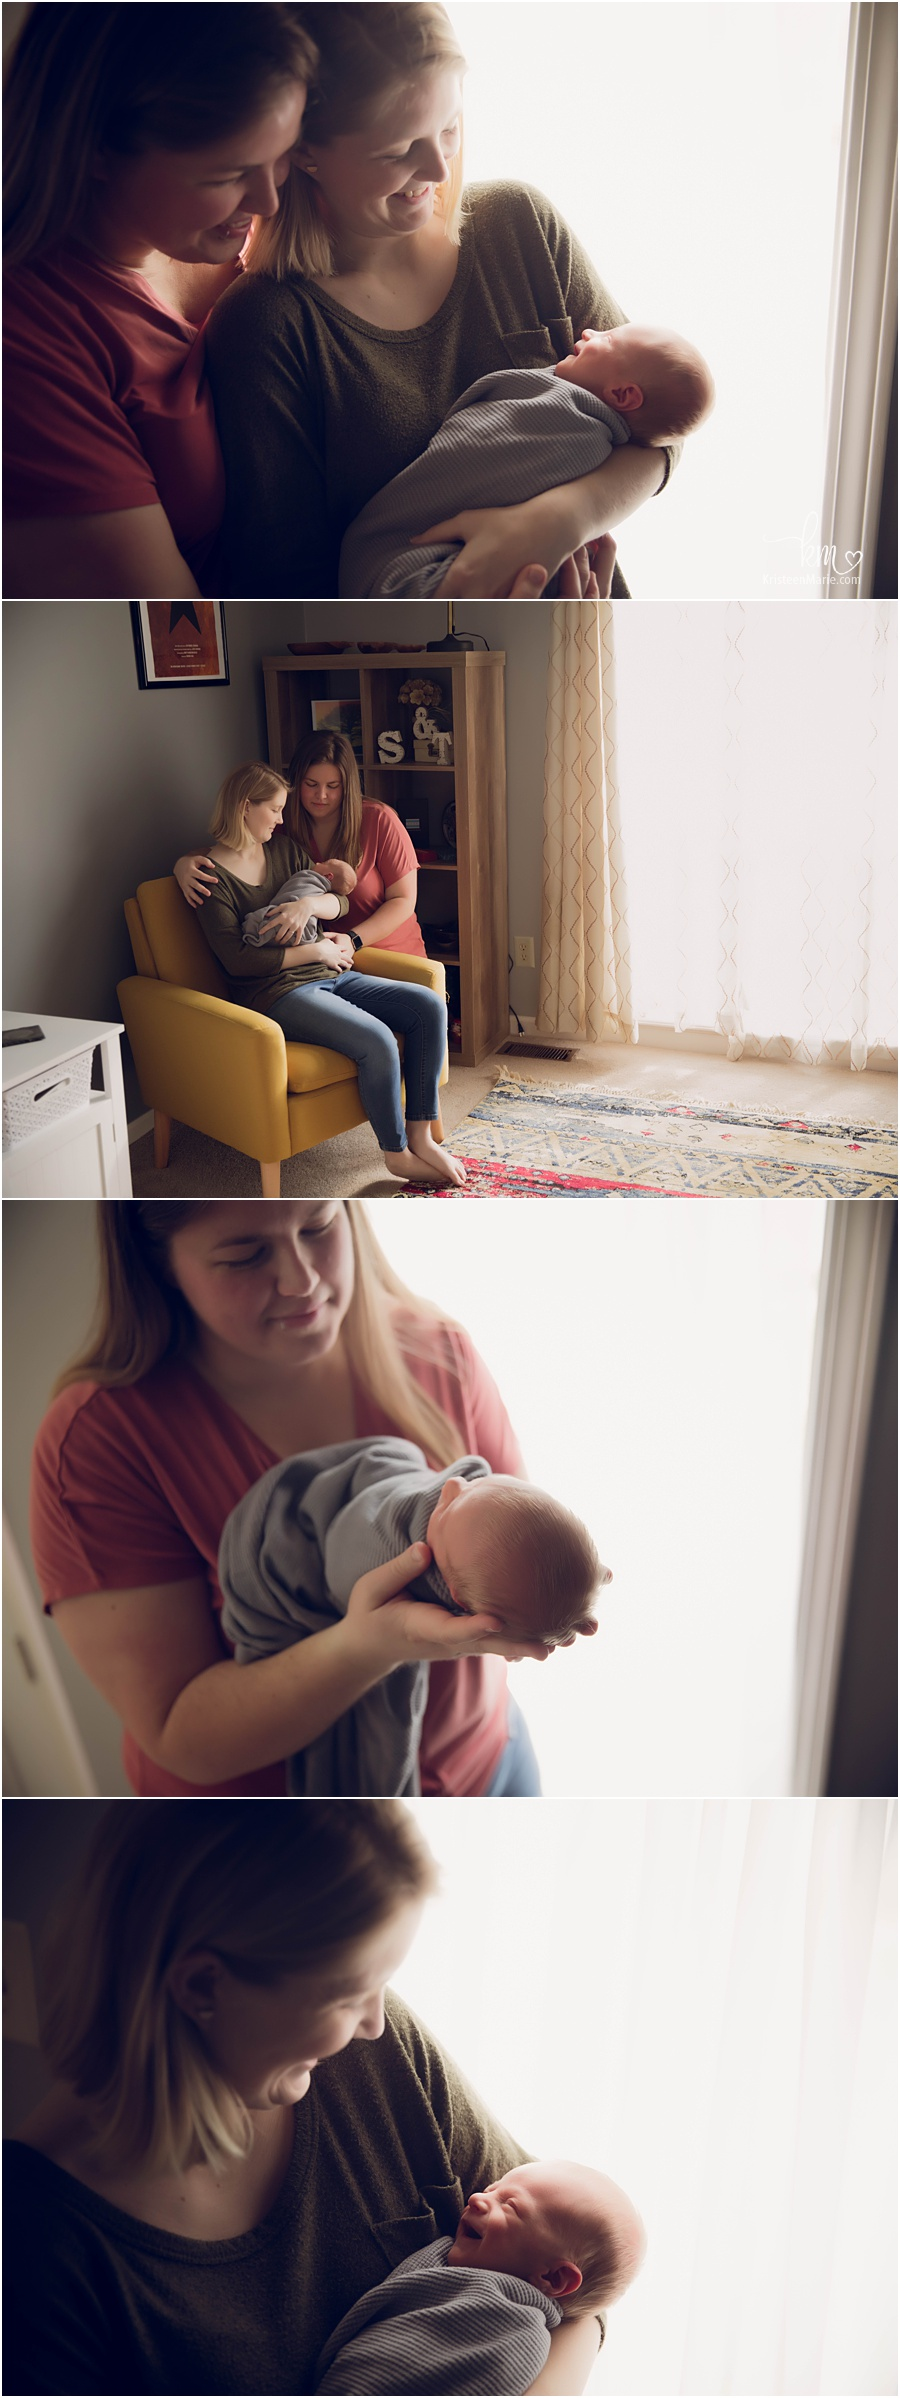 lesbians in home newborn photography session with baby